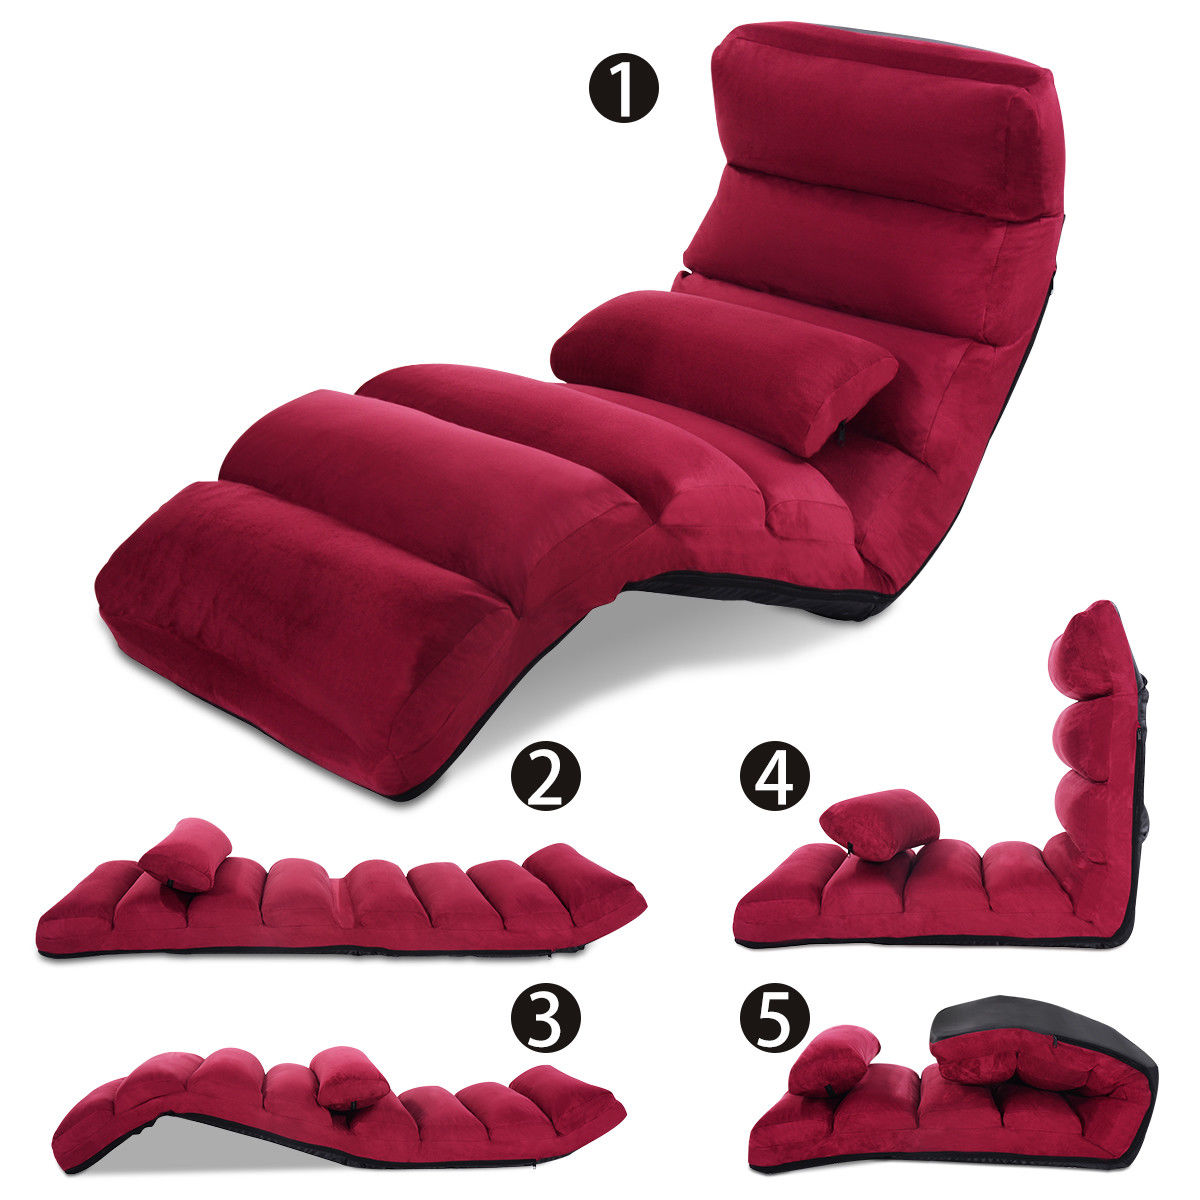 Costway Burgundy Folding Lazy Sofa Chair Stylish Sofa Couch Beds Lounge Chair W/Pillow